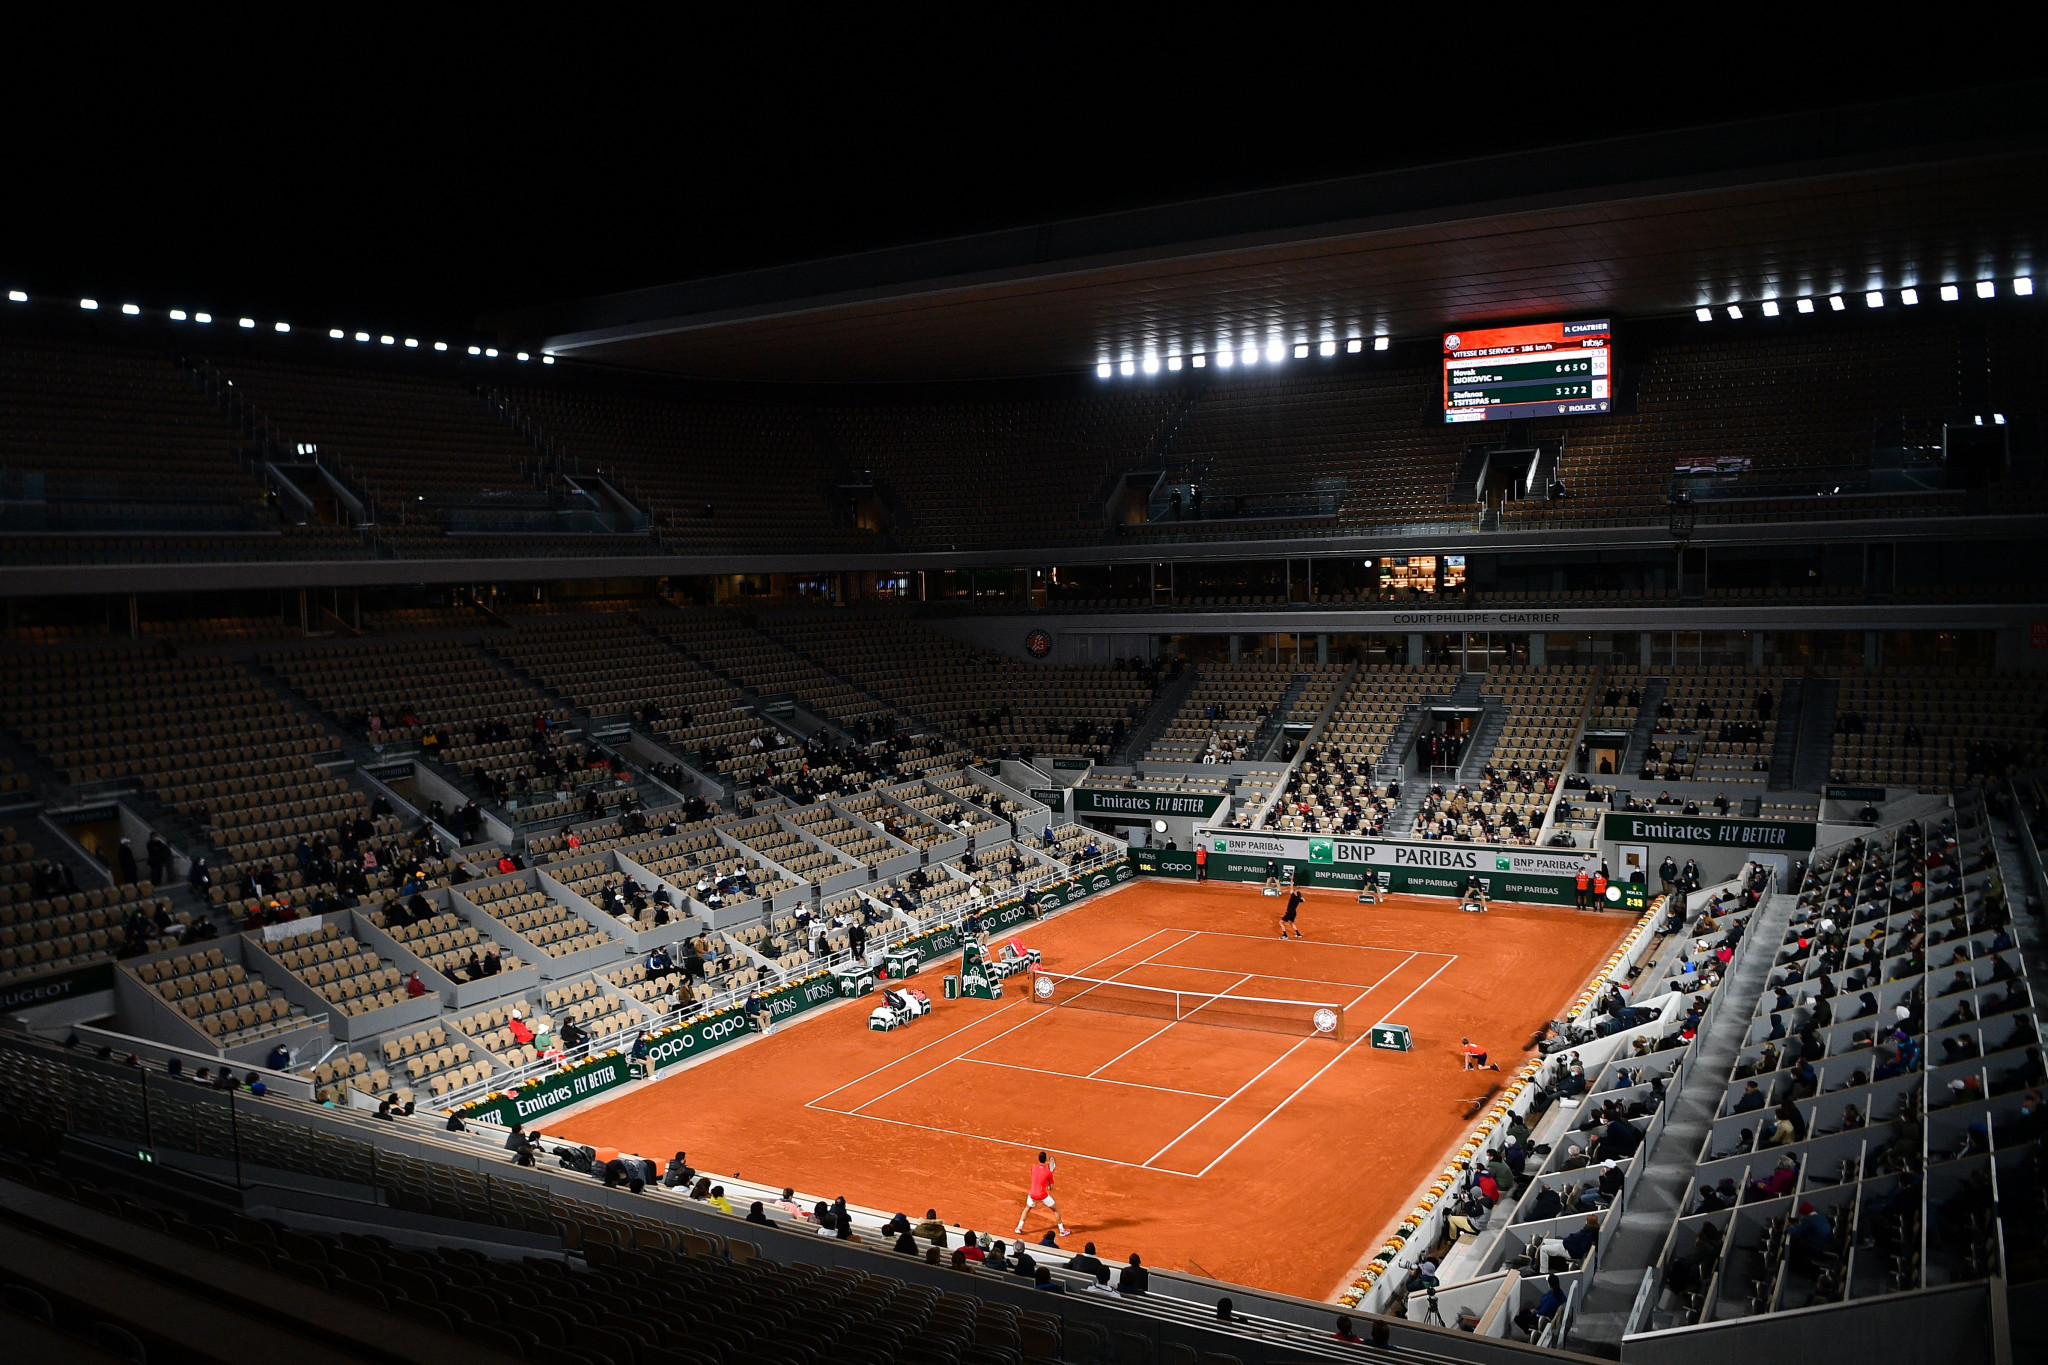 Only 1,000 spectators are permitted at Roland Garros per day due to the coronavirus pandemic ©Getty Images